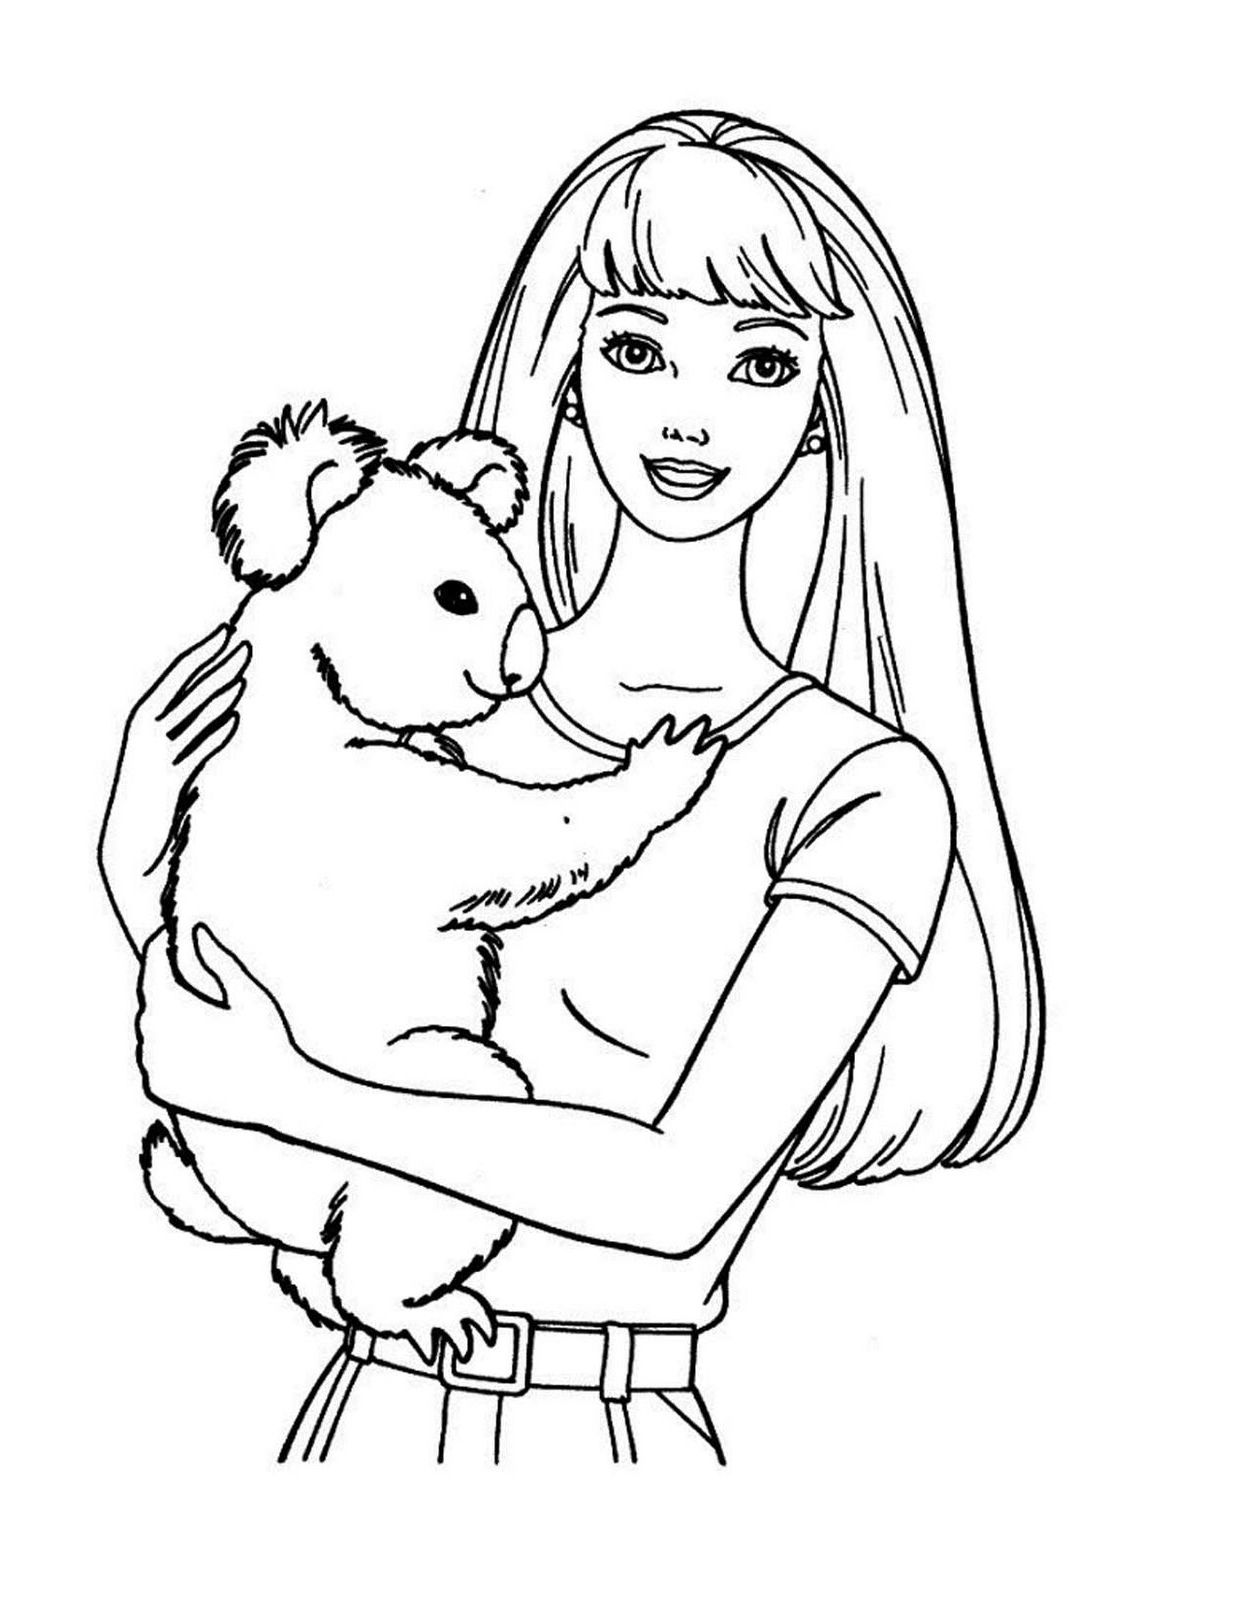 Pr princess coloring sheet - Barbie Coloring Pages Printable Sheet Coloring Pages To Print